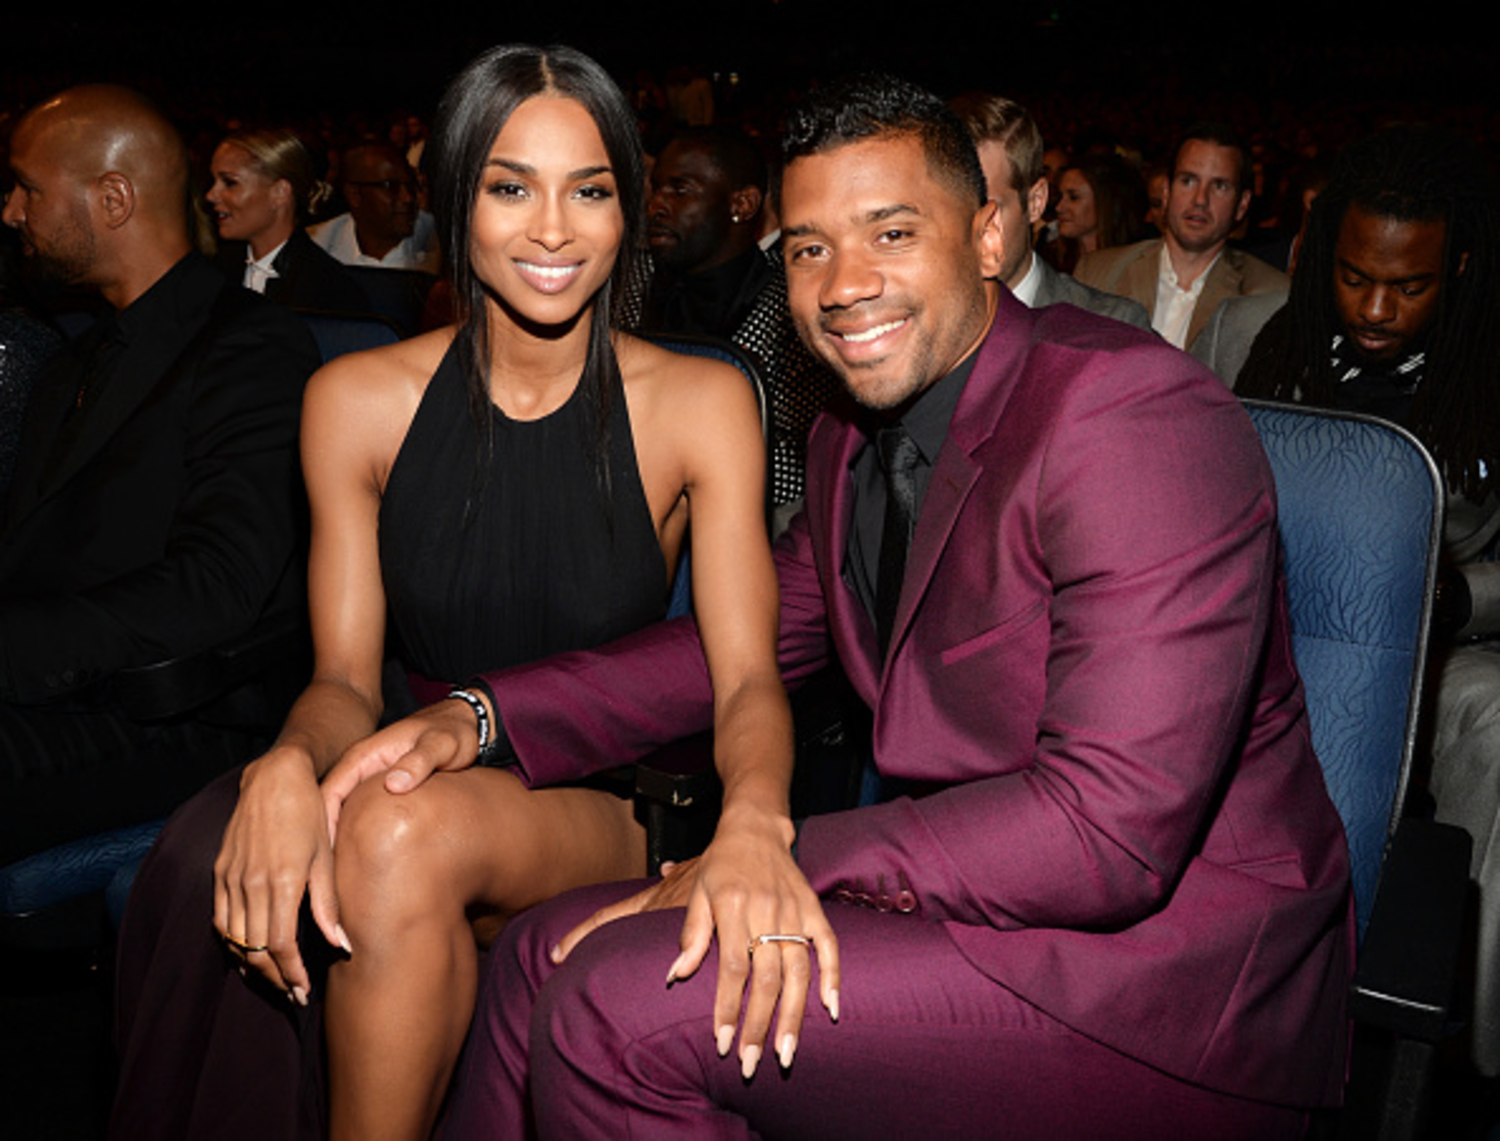 Russell Wilson and Ciara donating money